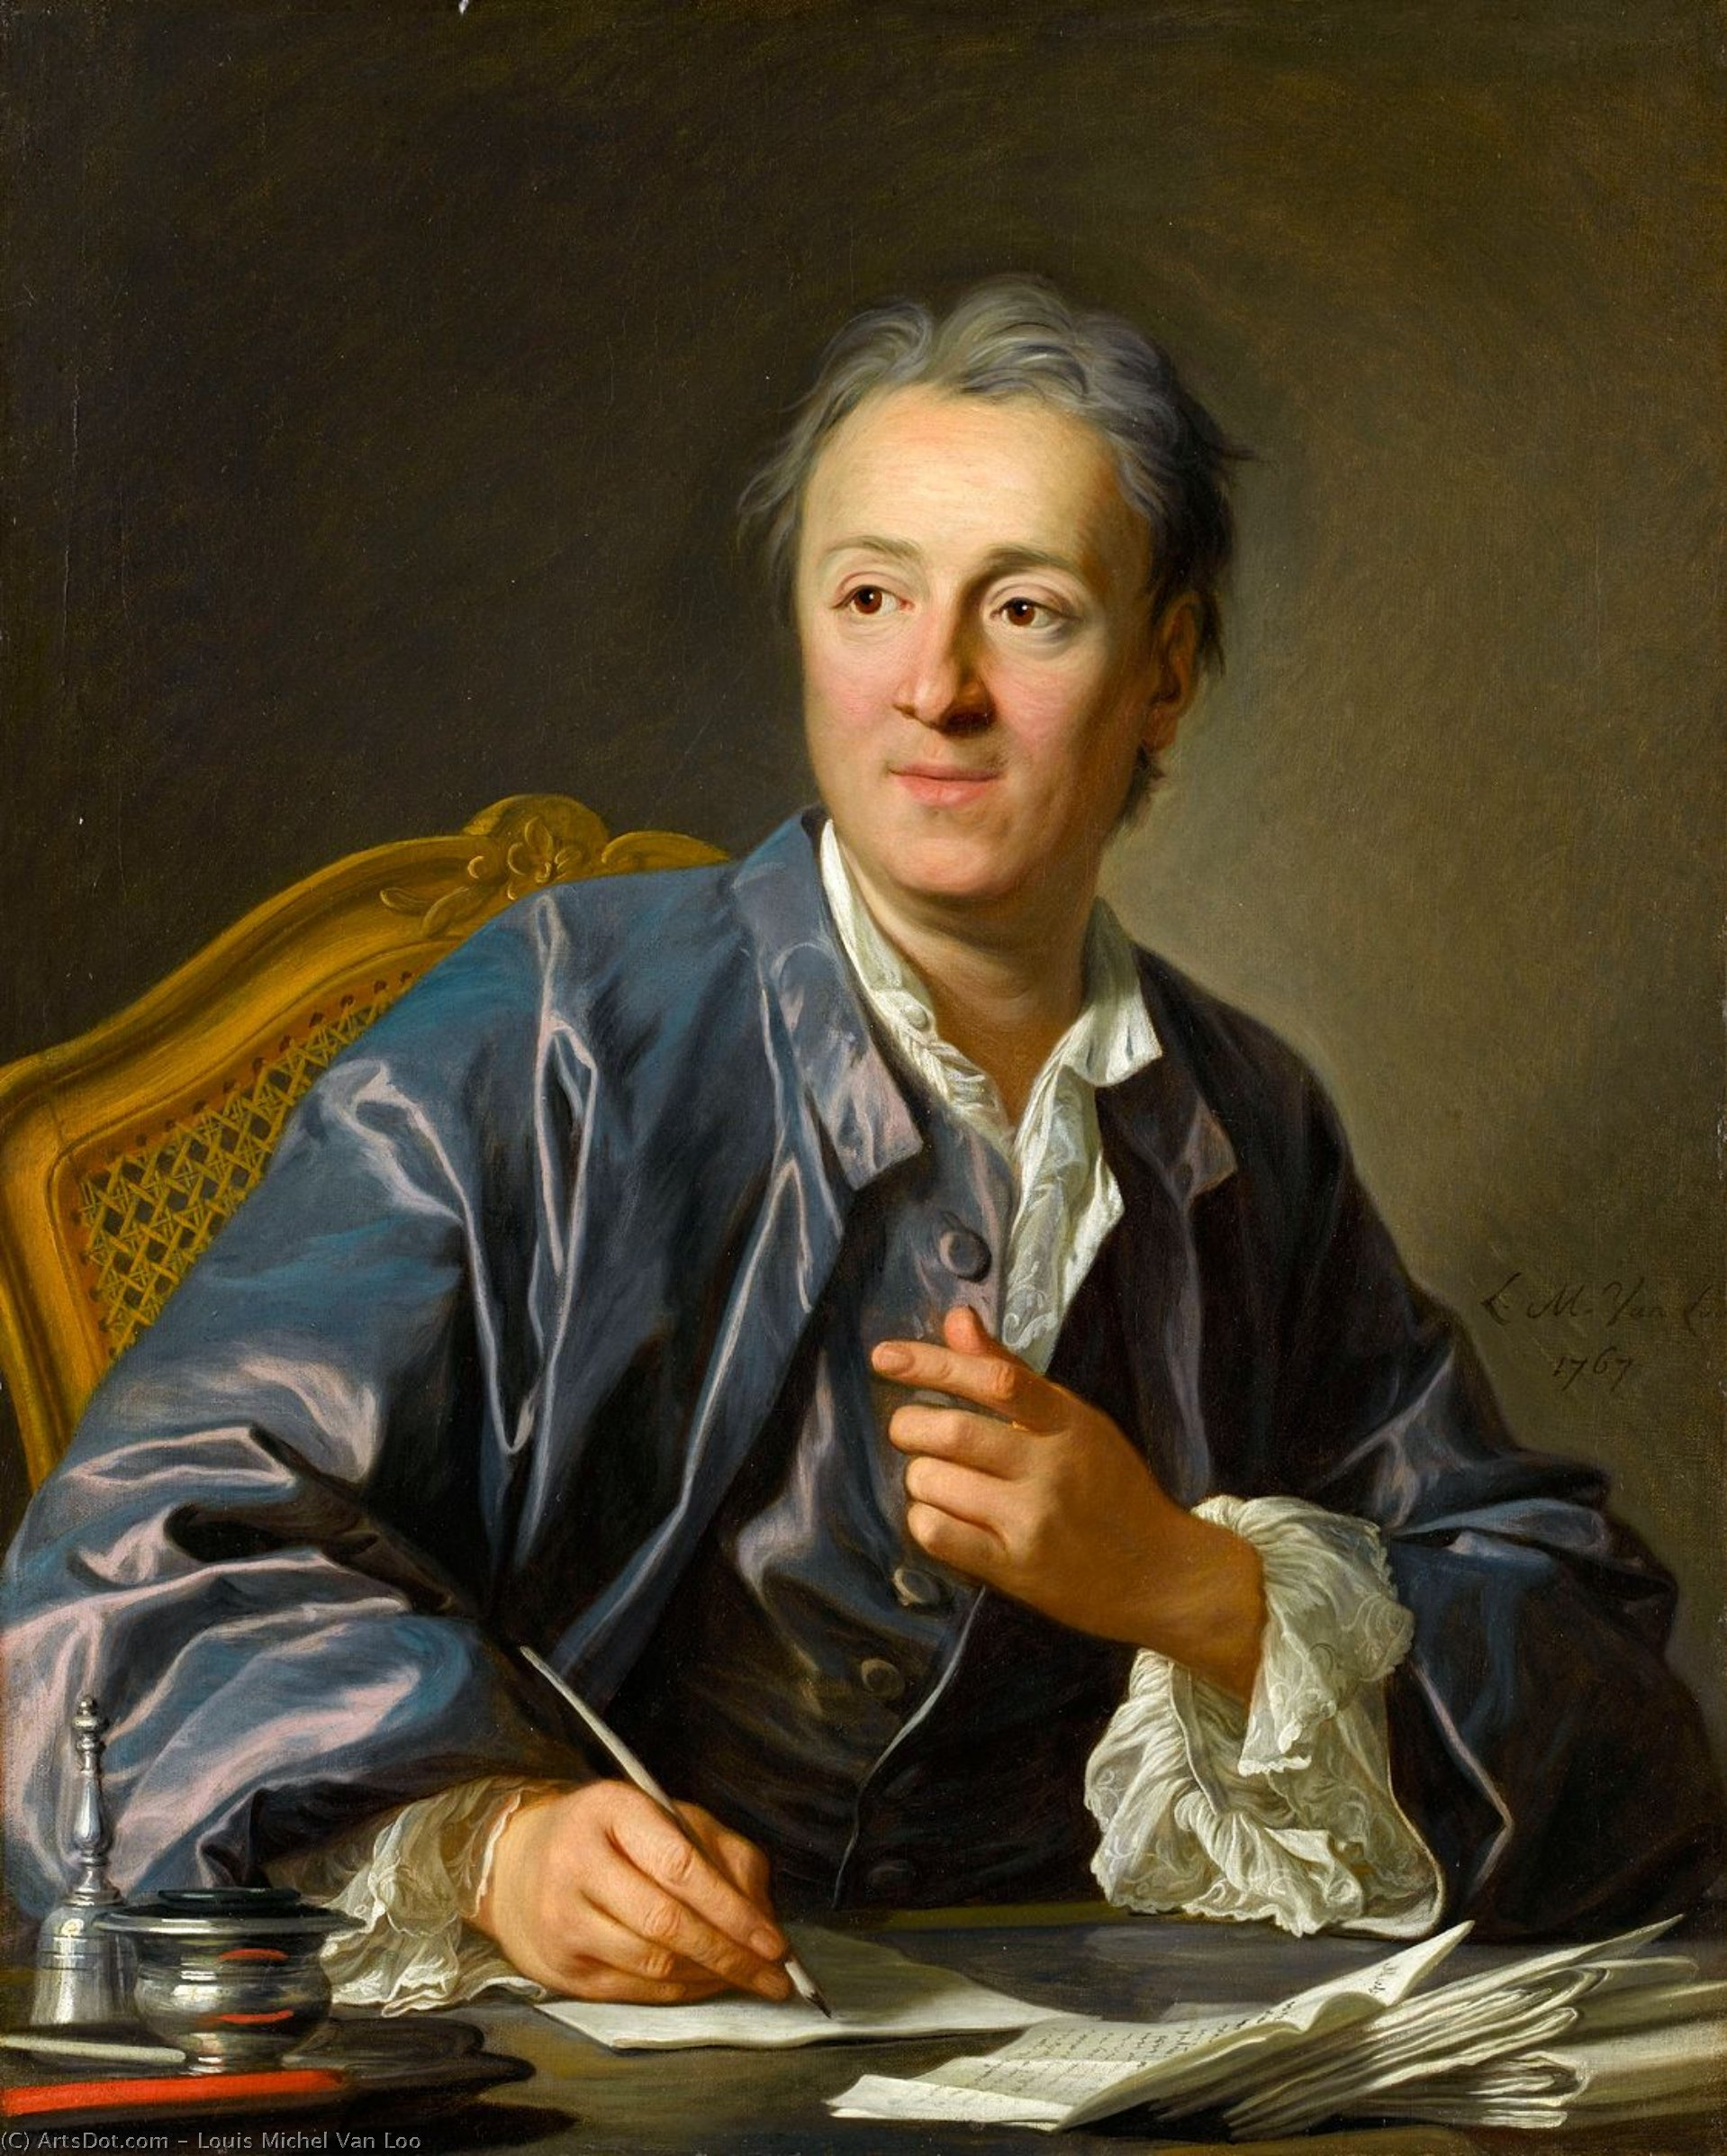 Portrait de denis diderot, 1767 de Louis Michel Van Loo (1707-1771, France) | Copie Tableau | ArtsDot.com